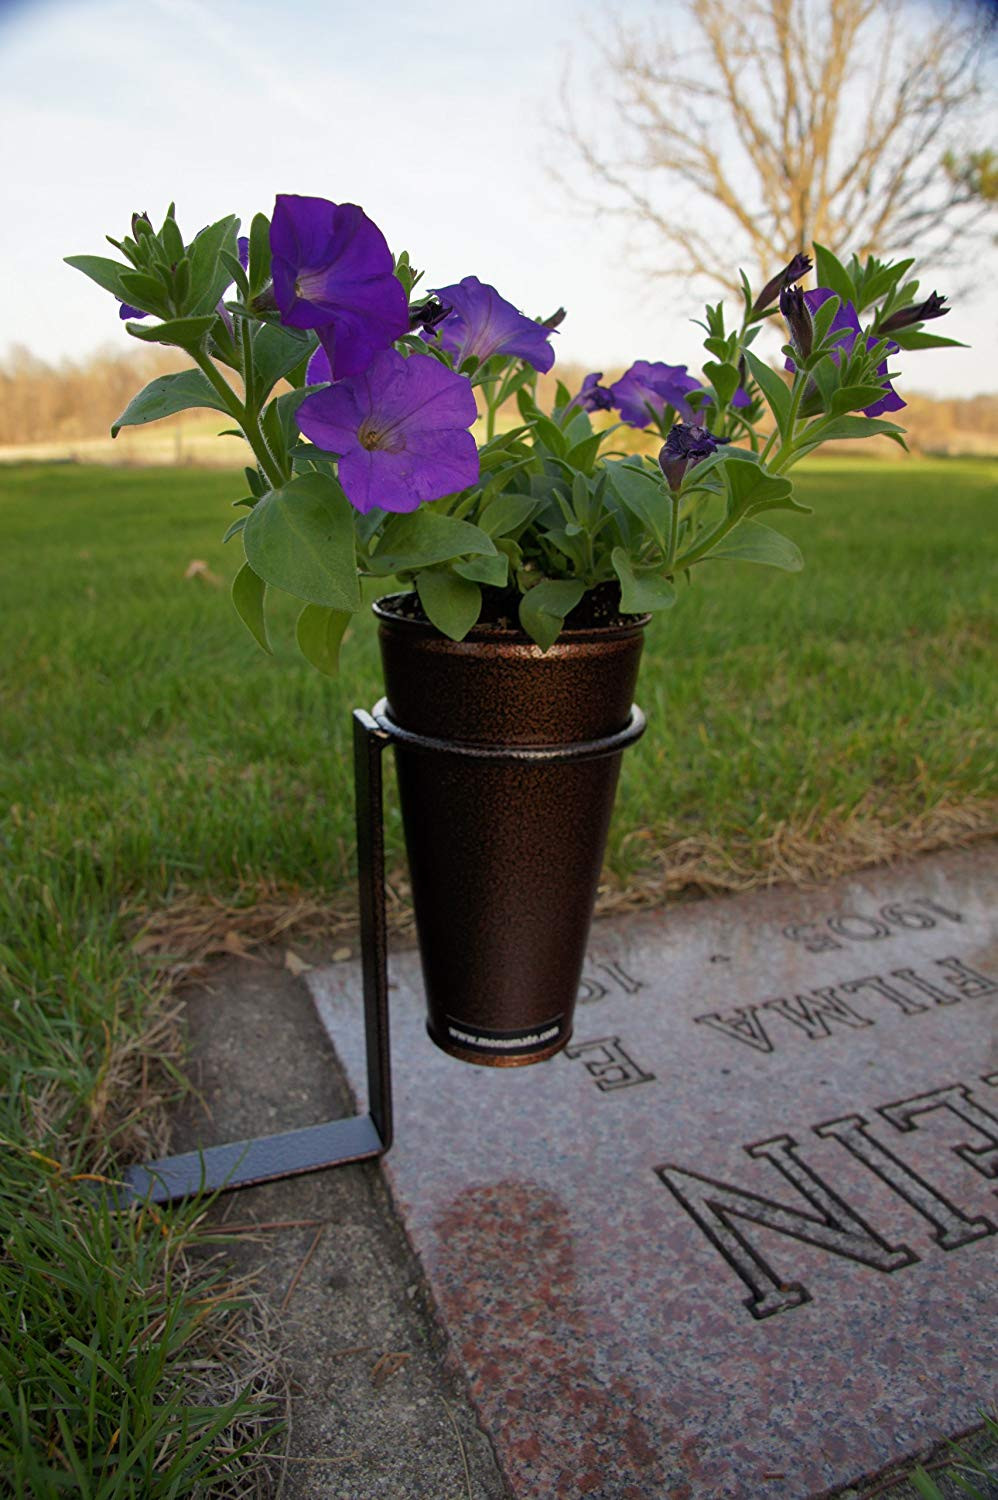 stay in the vase cemetery flowers of stay in the vase cemetery flowers with regard to 81duqigkvil sl1500